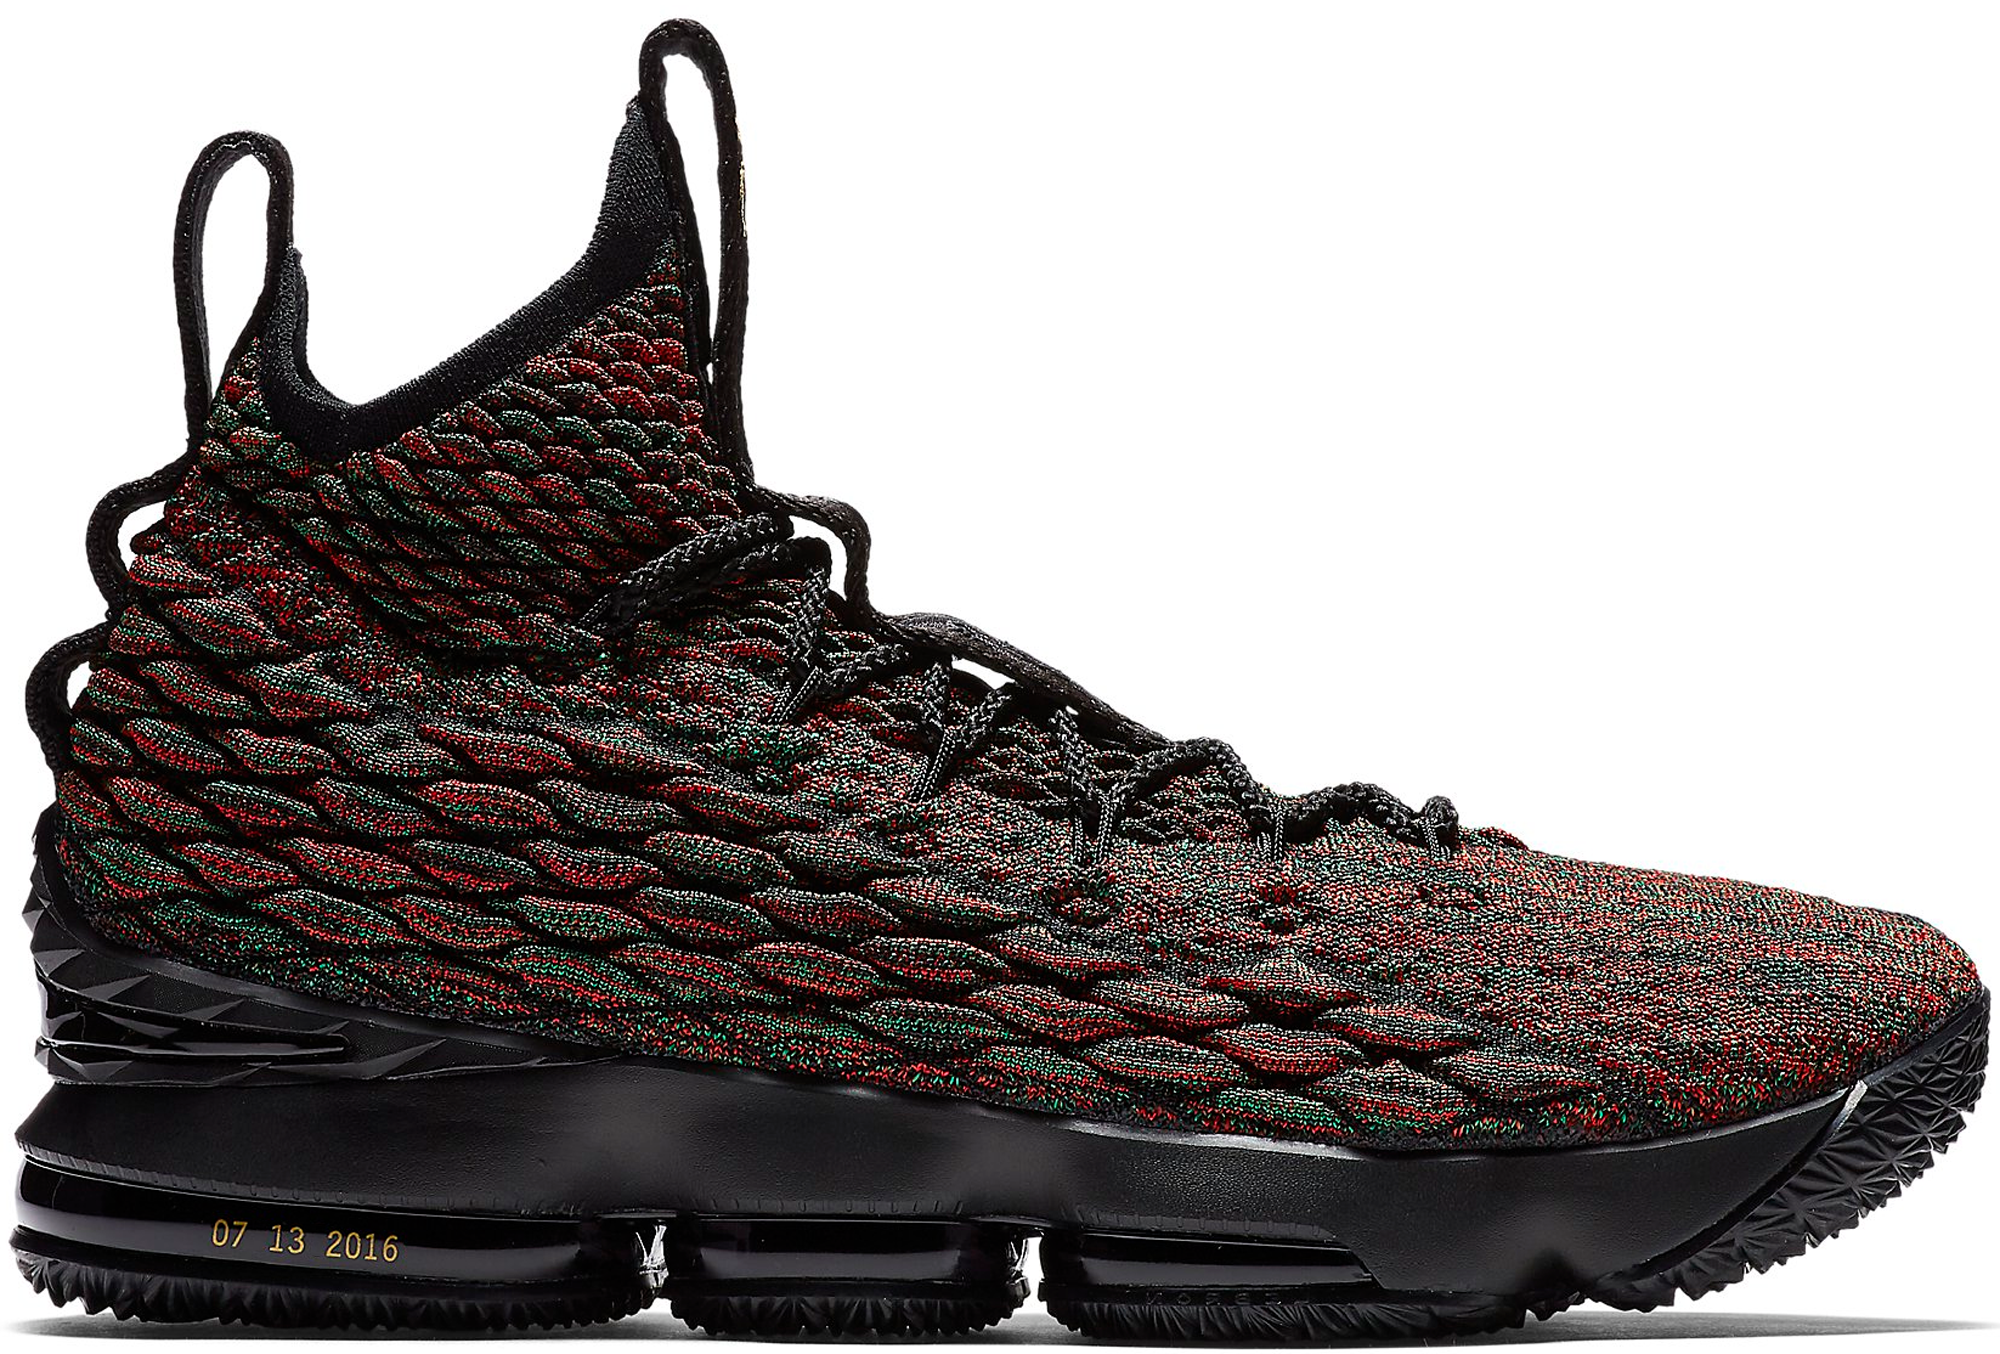 Nike Black History Month Shoes